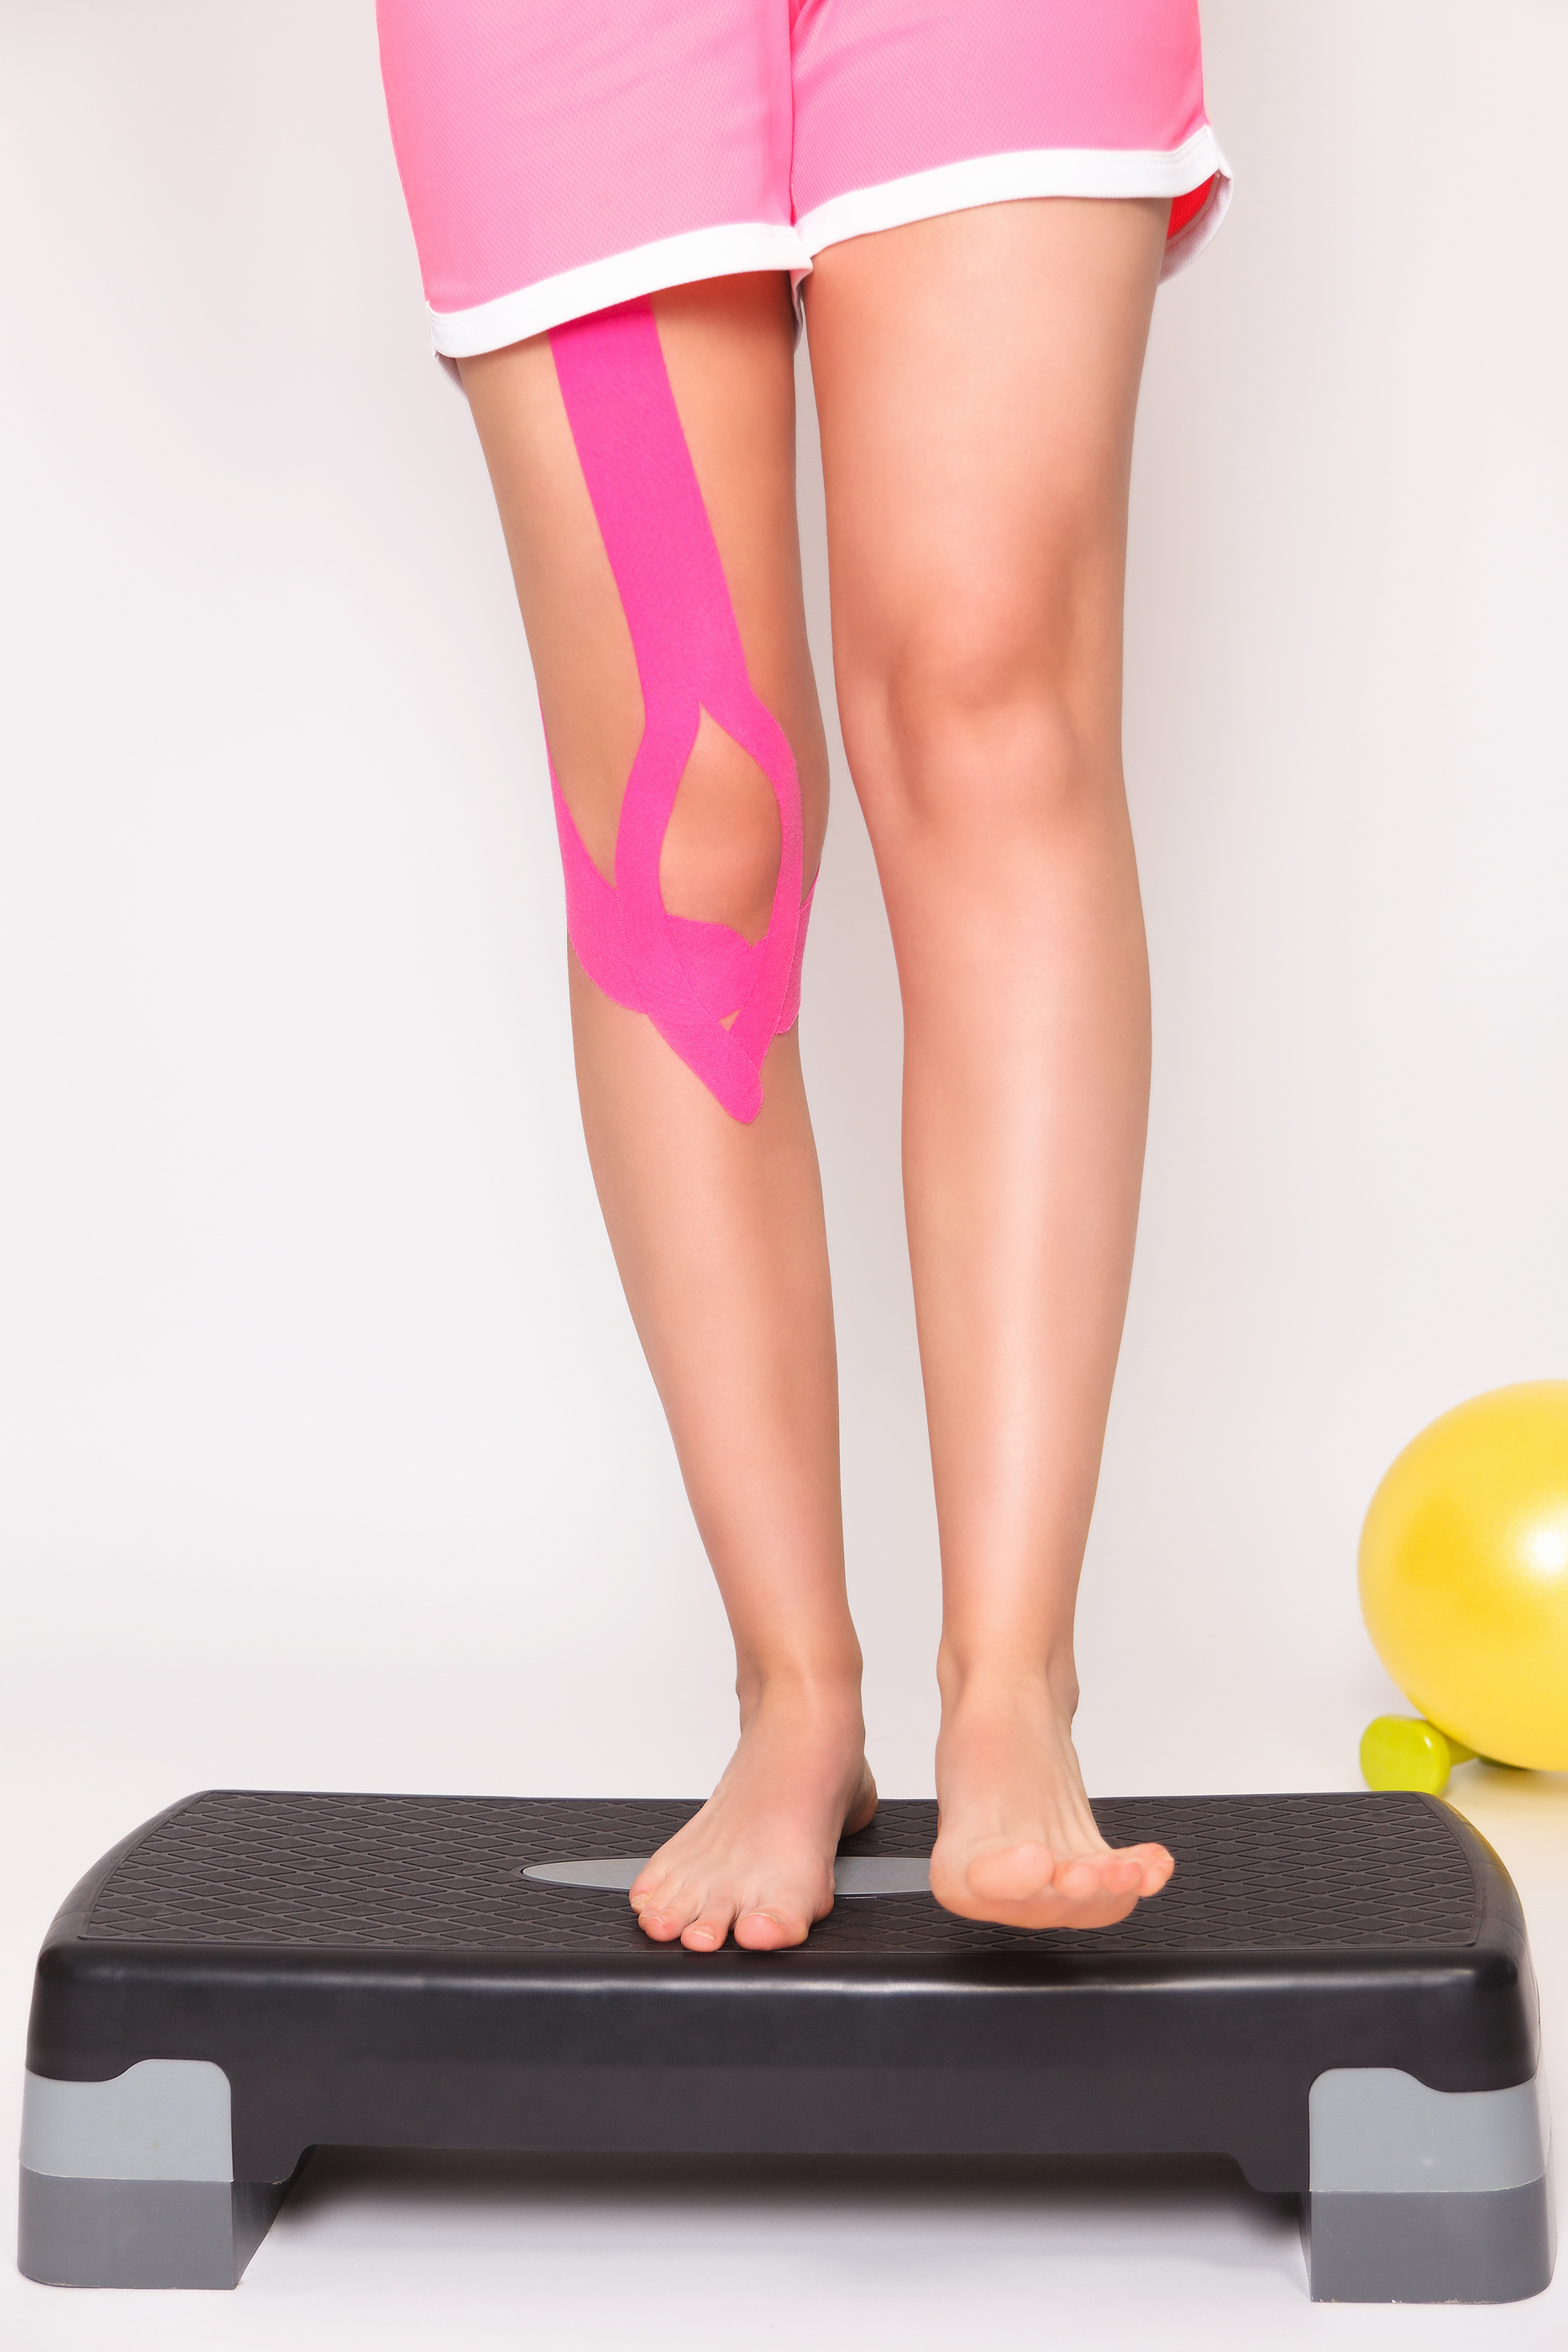 Exercise After Leg Injury With Tape